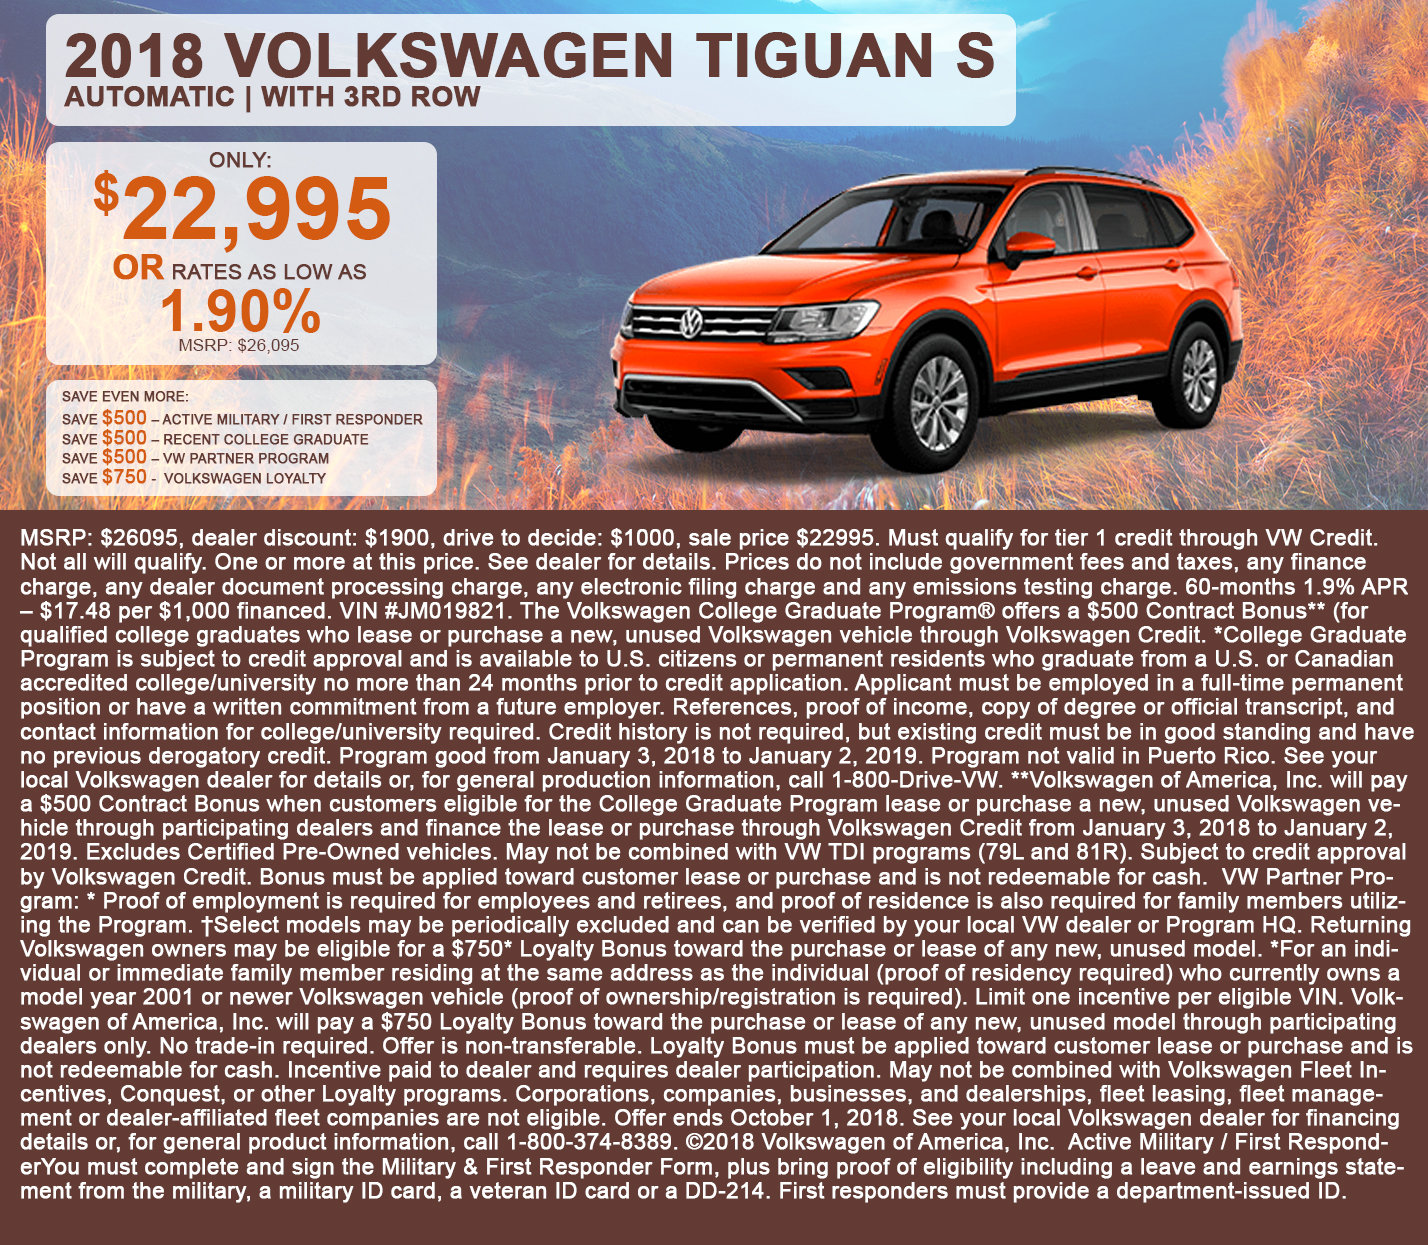 2018 Volkswagen Tiguan S Automatic | With 3rd Row